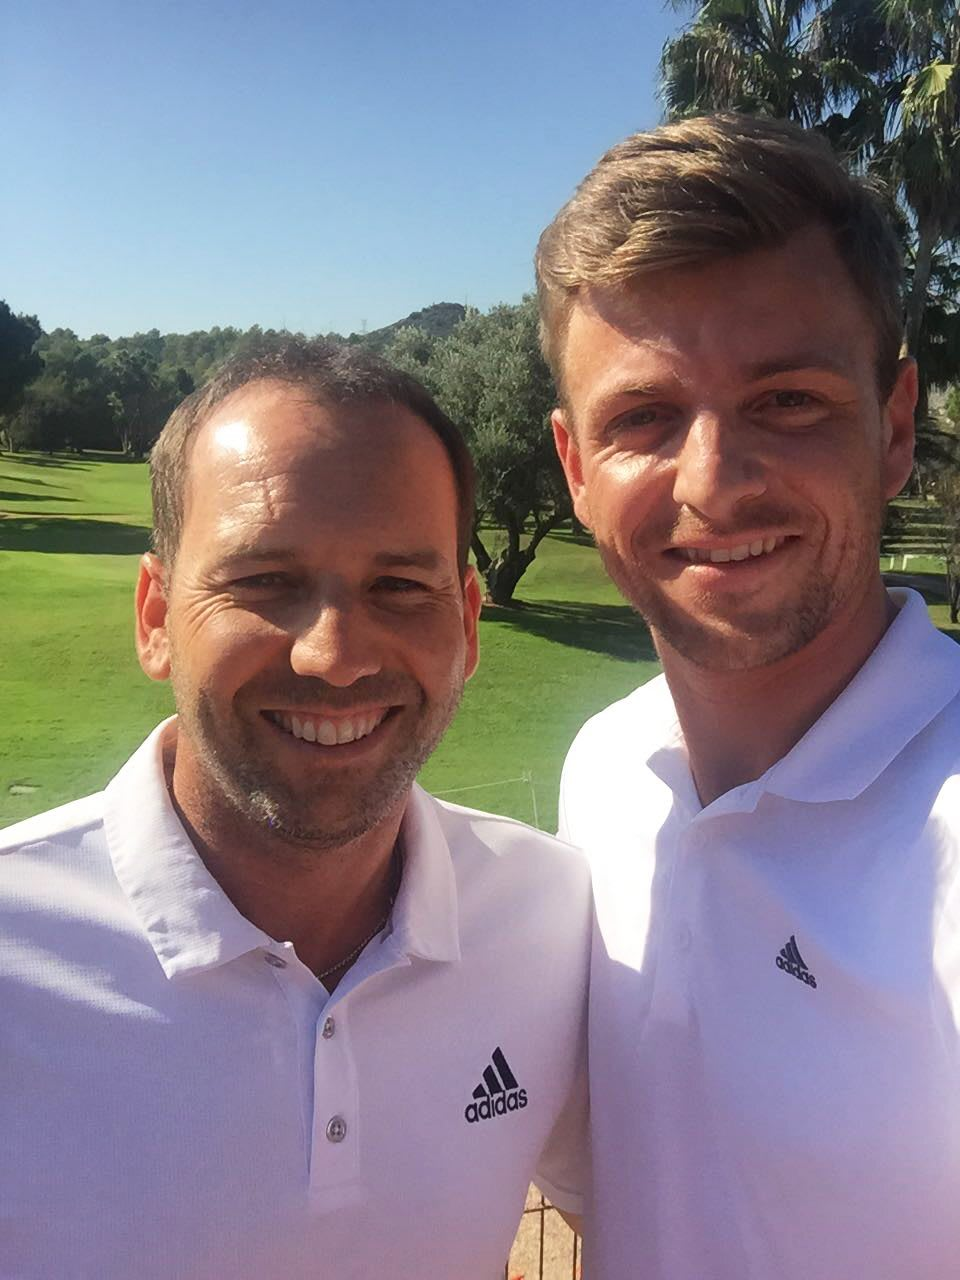 Sergio García and Ben Howlett smiling into the camera at a golf course, golf, golf course, pro athletes, sport, adidas, GamePlan A